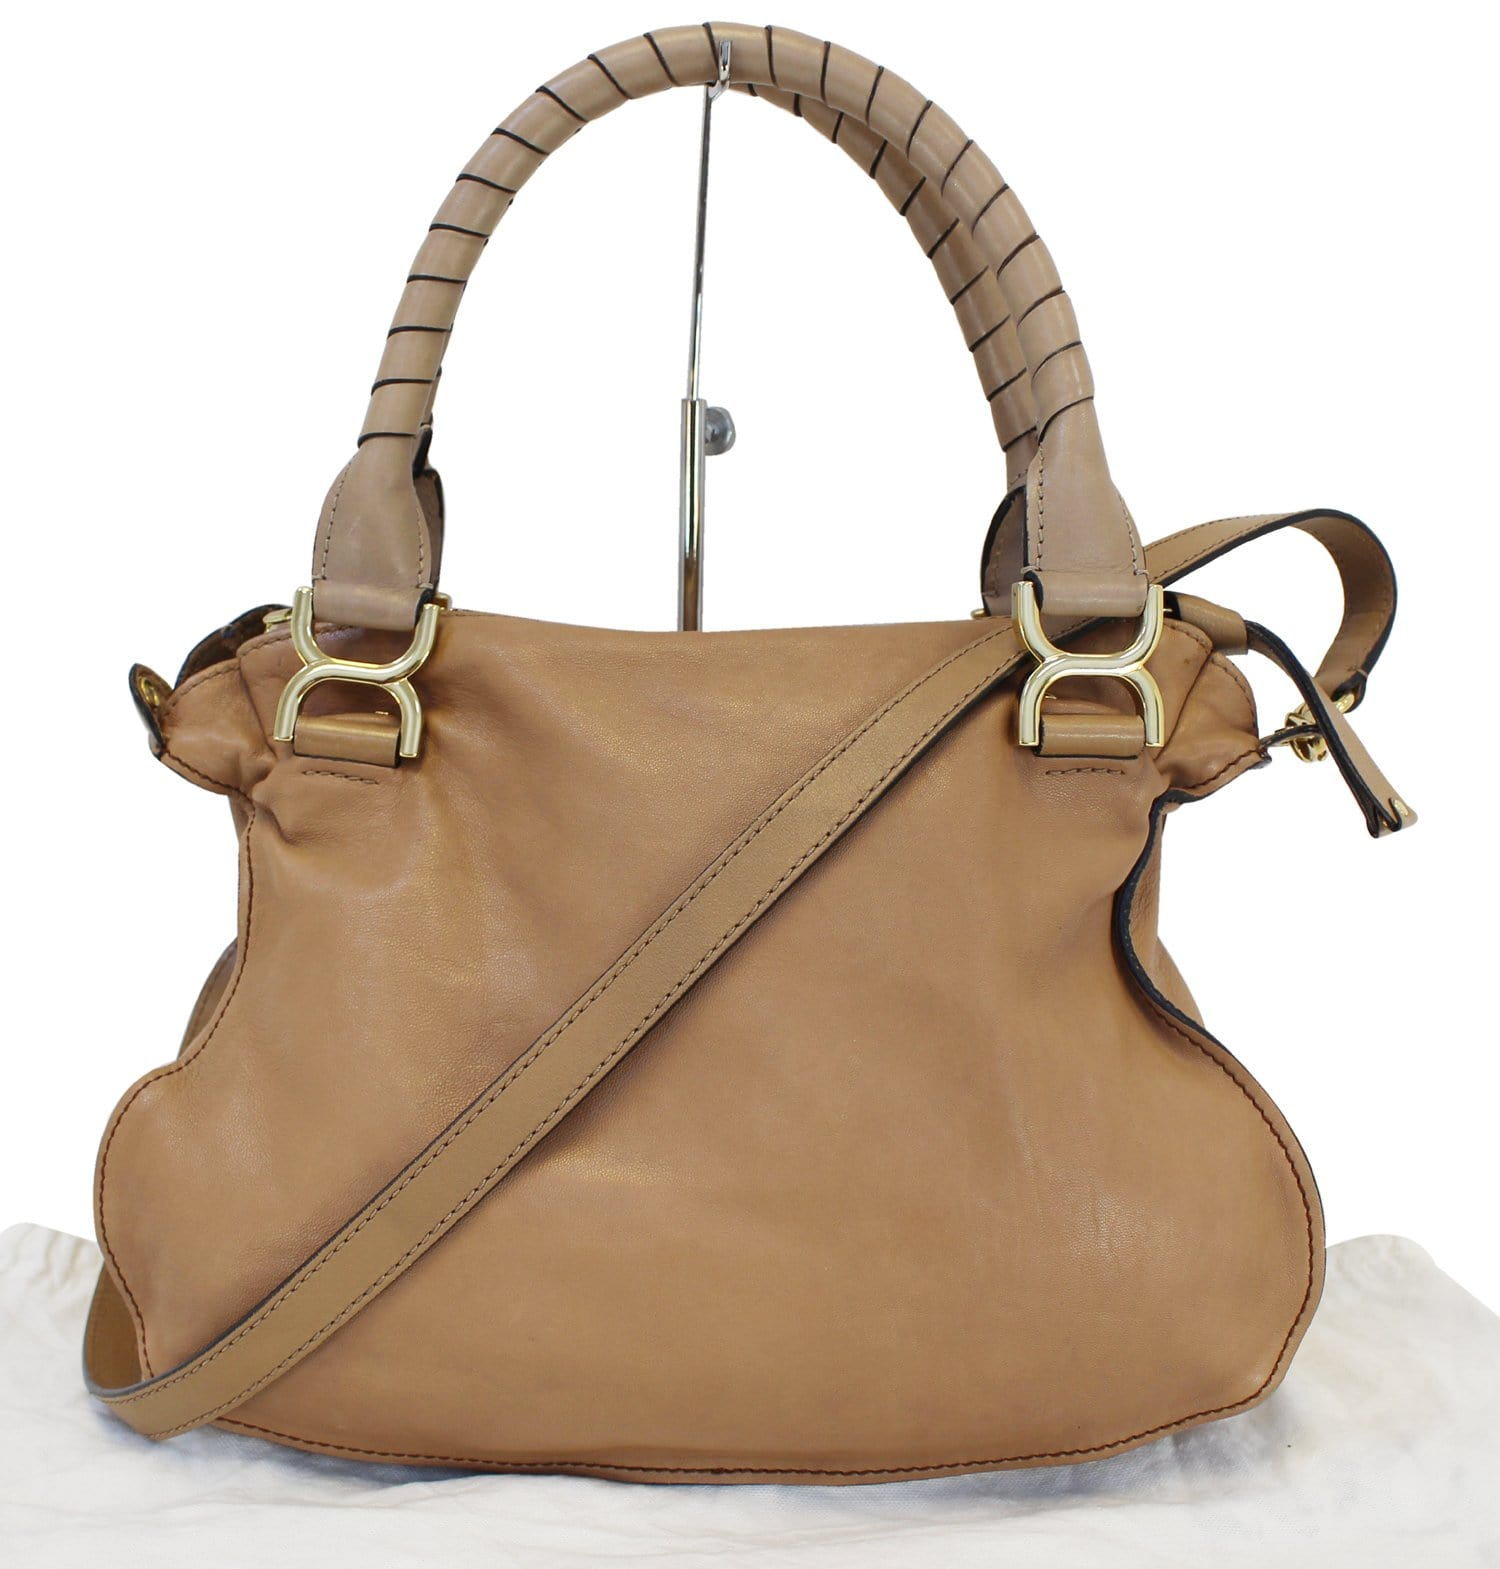 438109eed6 CHLOE Marcie Lock 2way Leather Brown Satchel Bag - Final Call